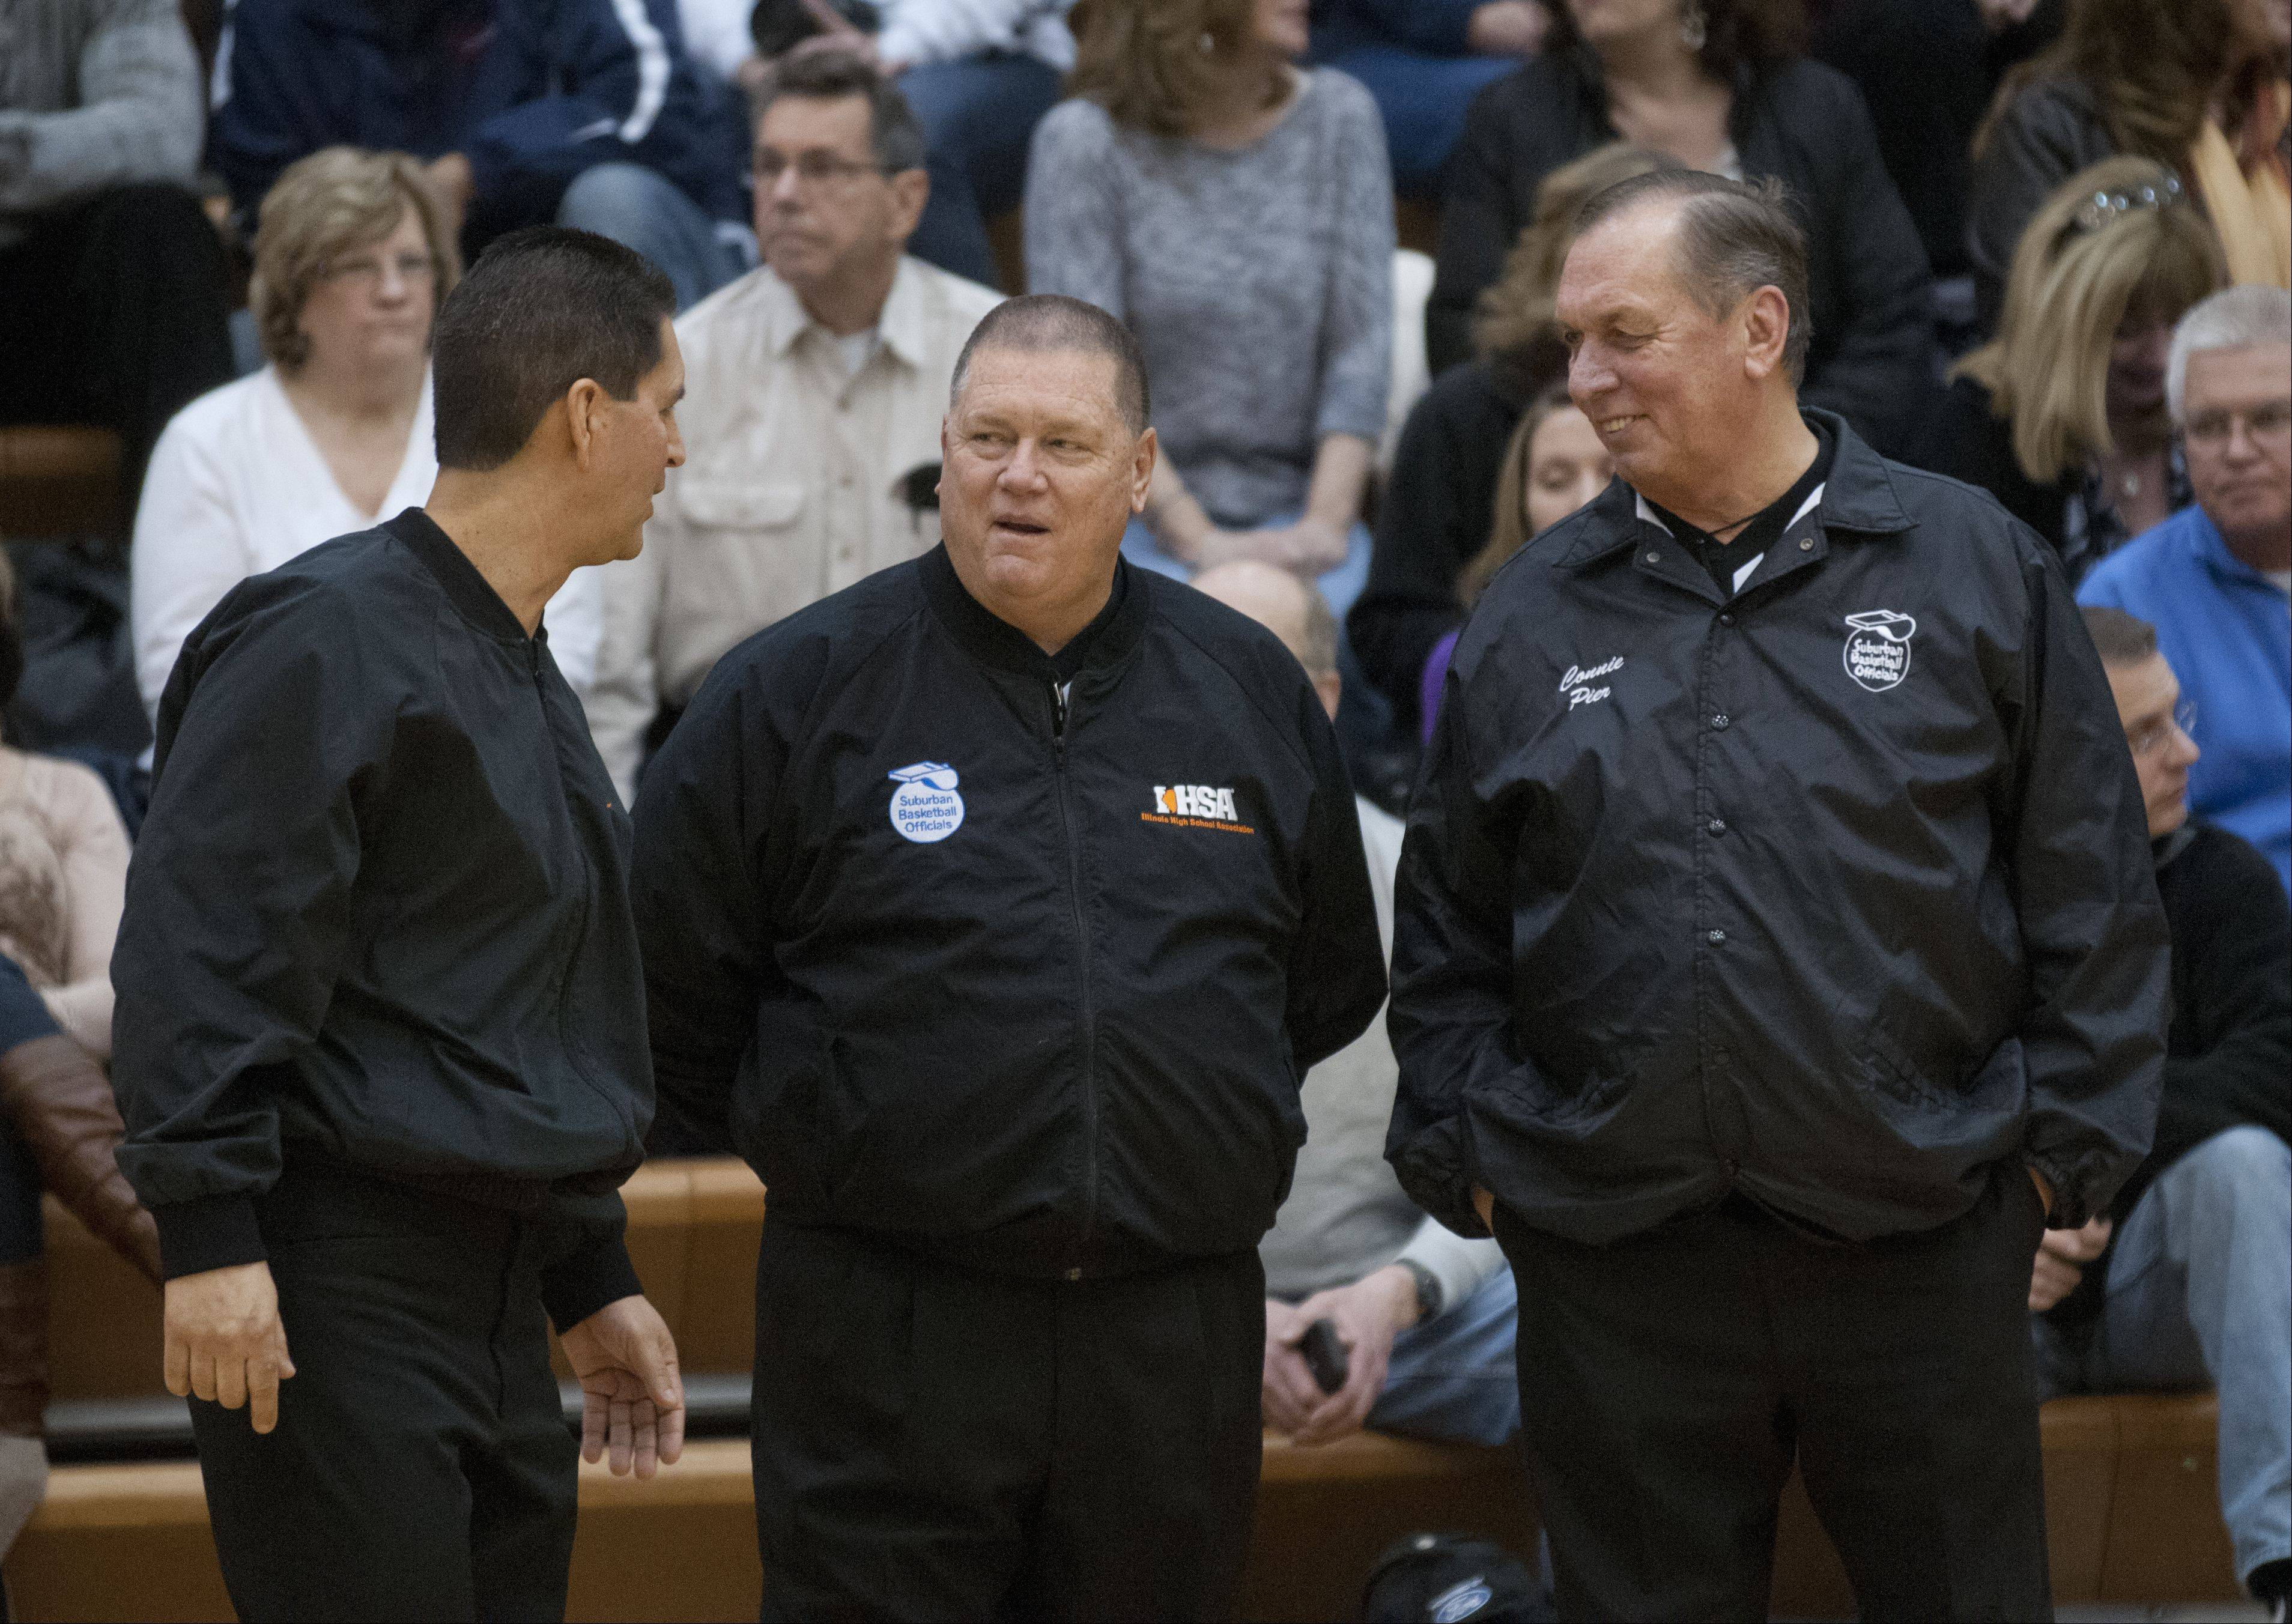 Rick Bieterman, center, talks with fellow referees Ernie Flores and Connie Pier before the start of the game between Fremd and Conant high schools. Bieterman has worked with these two refs for years and views them as his teammates.